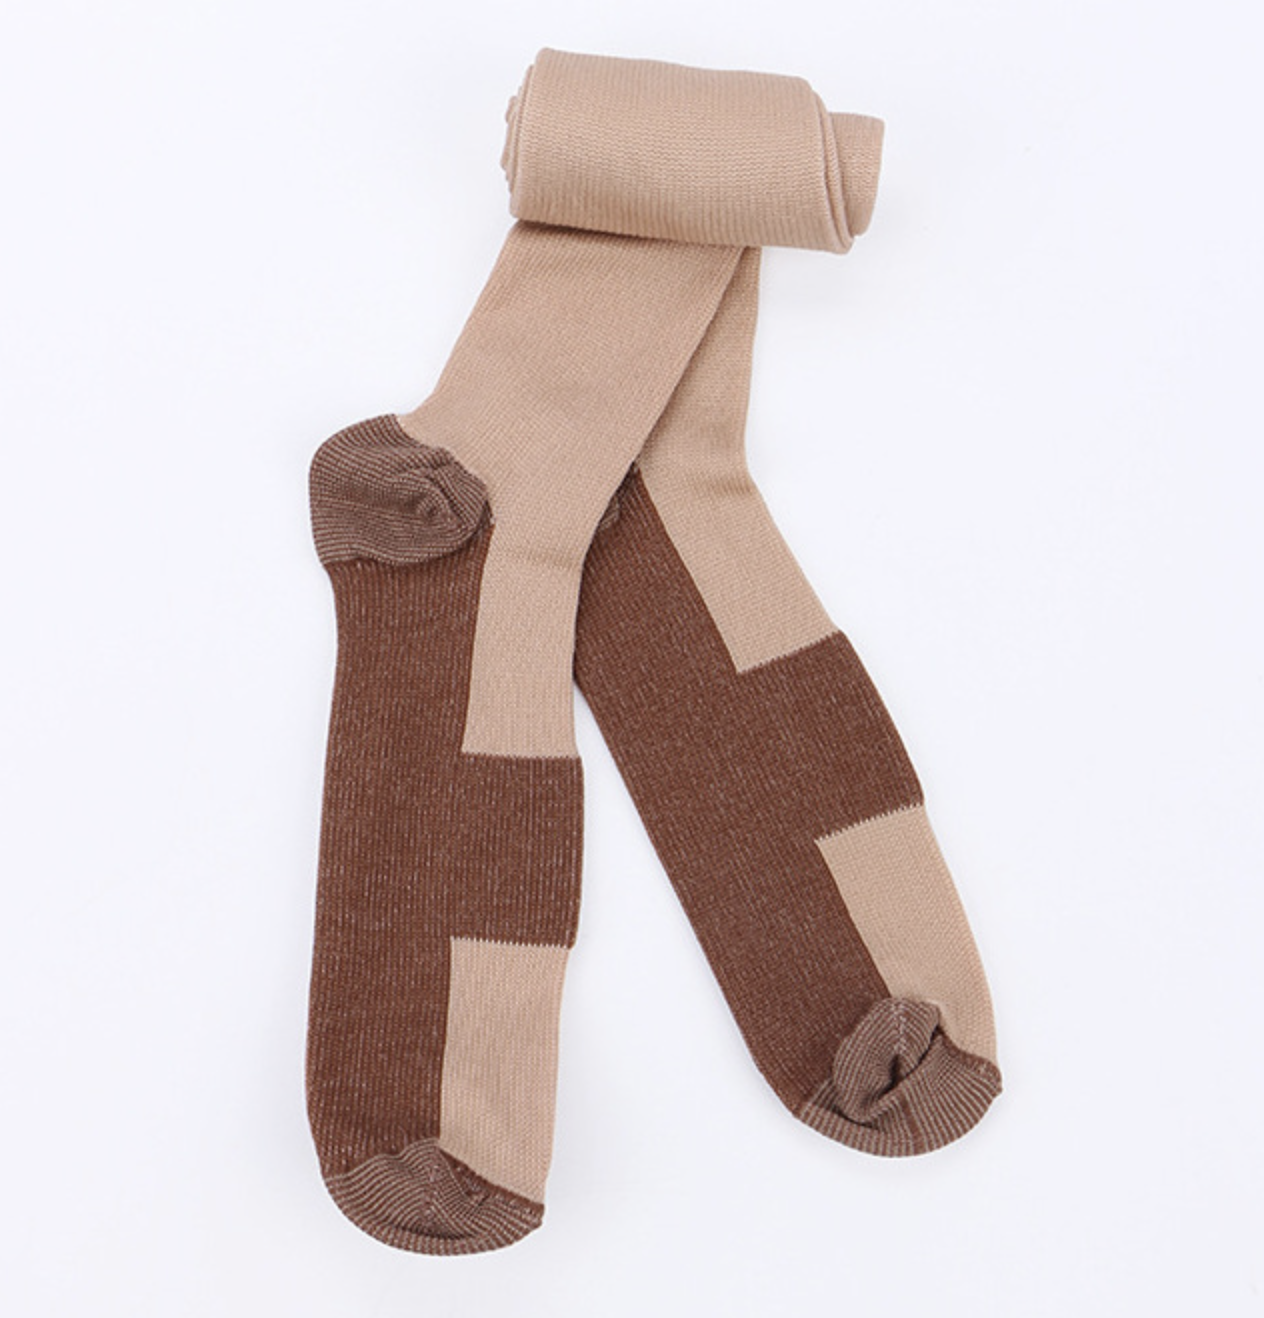 Copper Compression Stockings 20-30mmHg Support Socks Miracle Calf Men's Women's 7